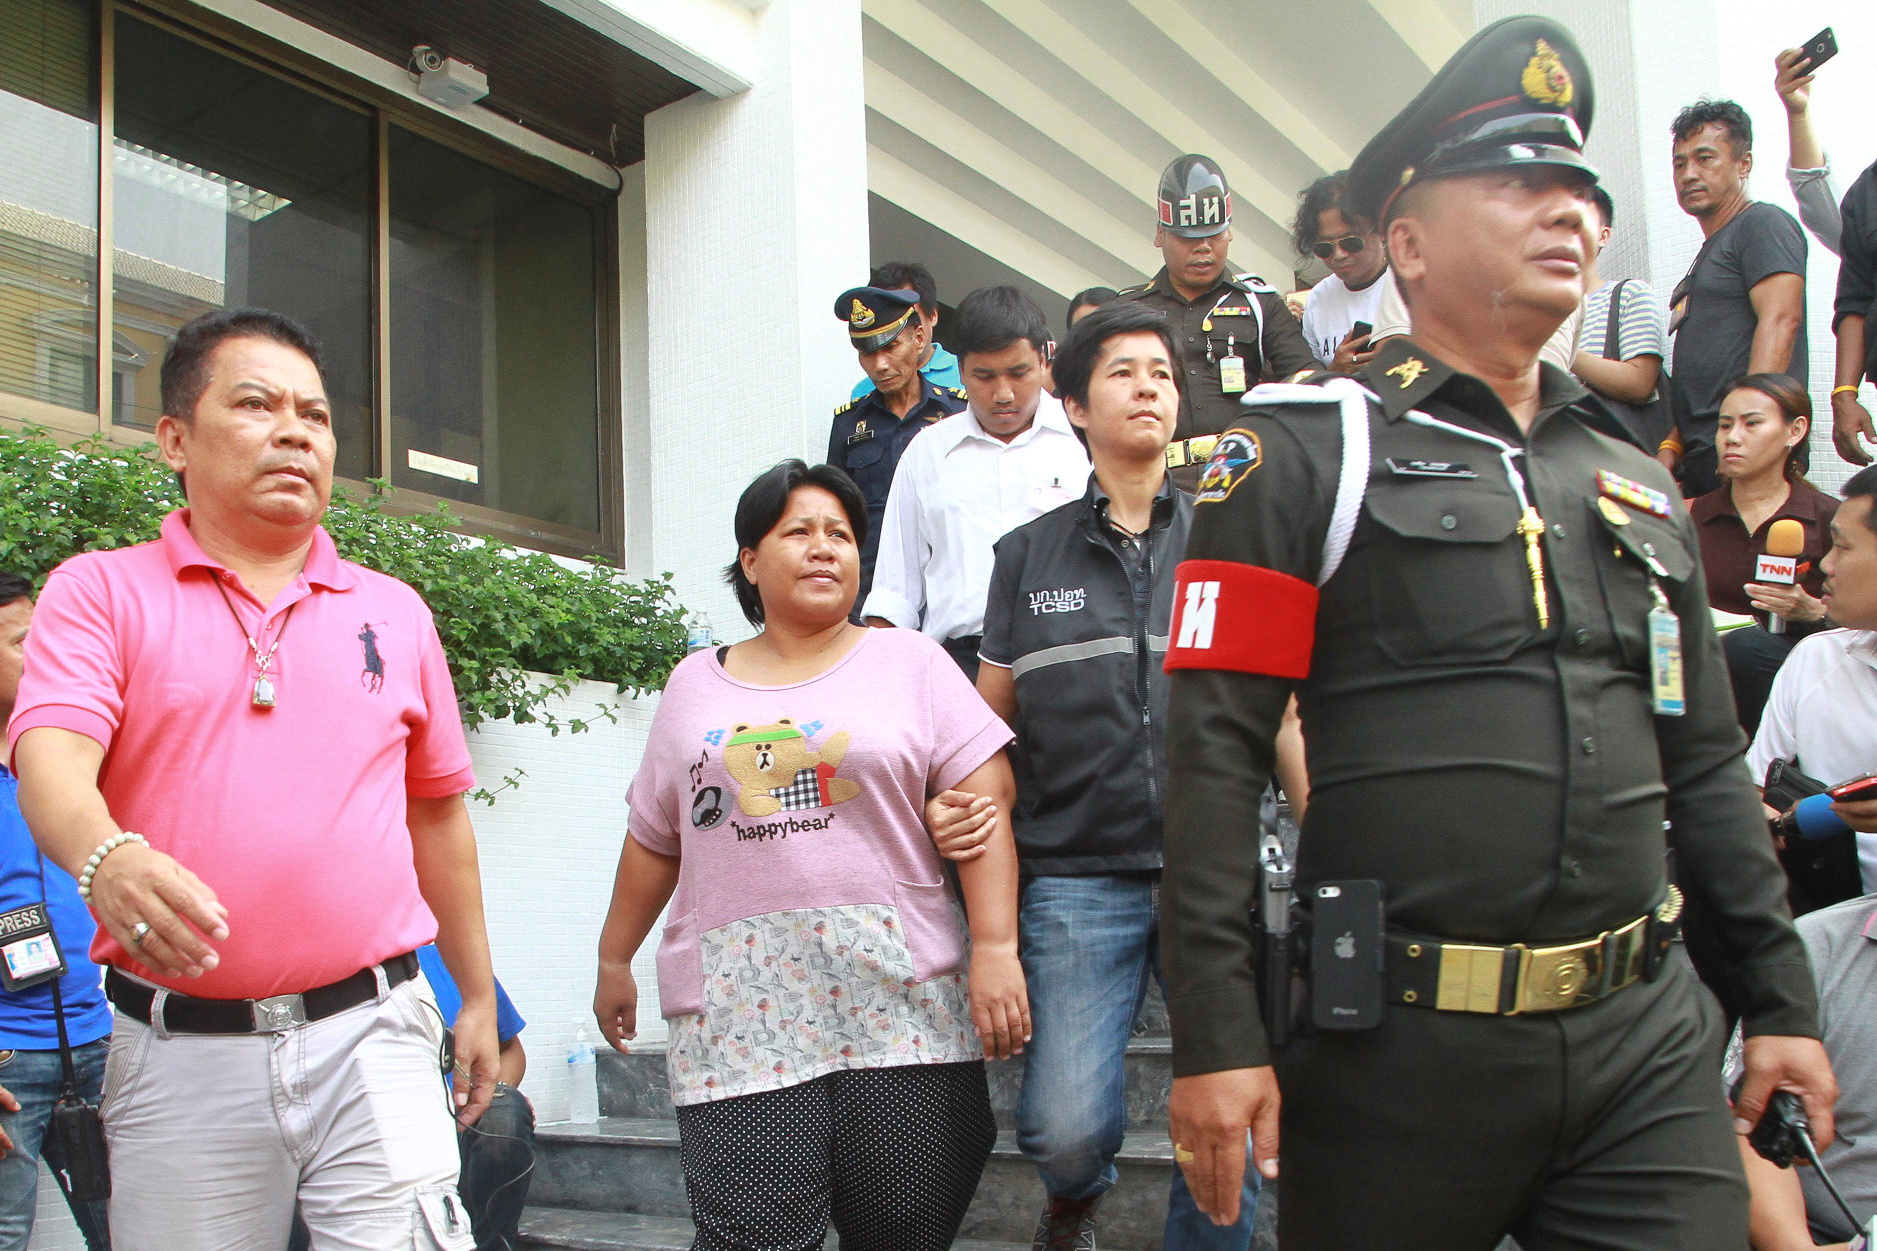 Patnaree Chankij (C), the mother of an anti-junta activist, is escorted by police as she leaves a military court in Bangkok, Thailand, May 8, 2016